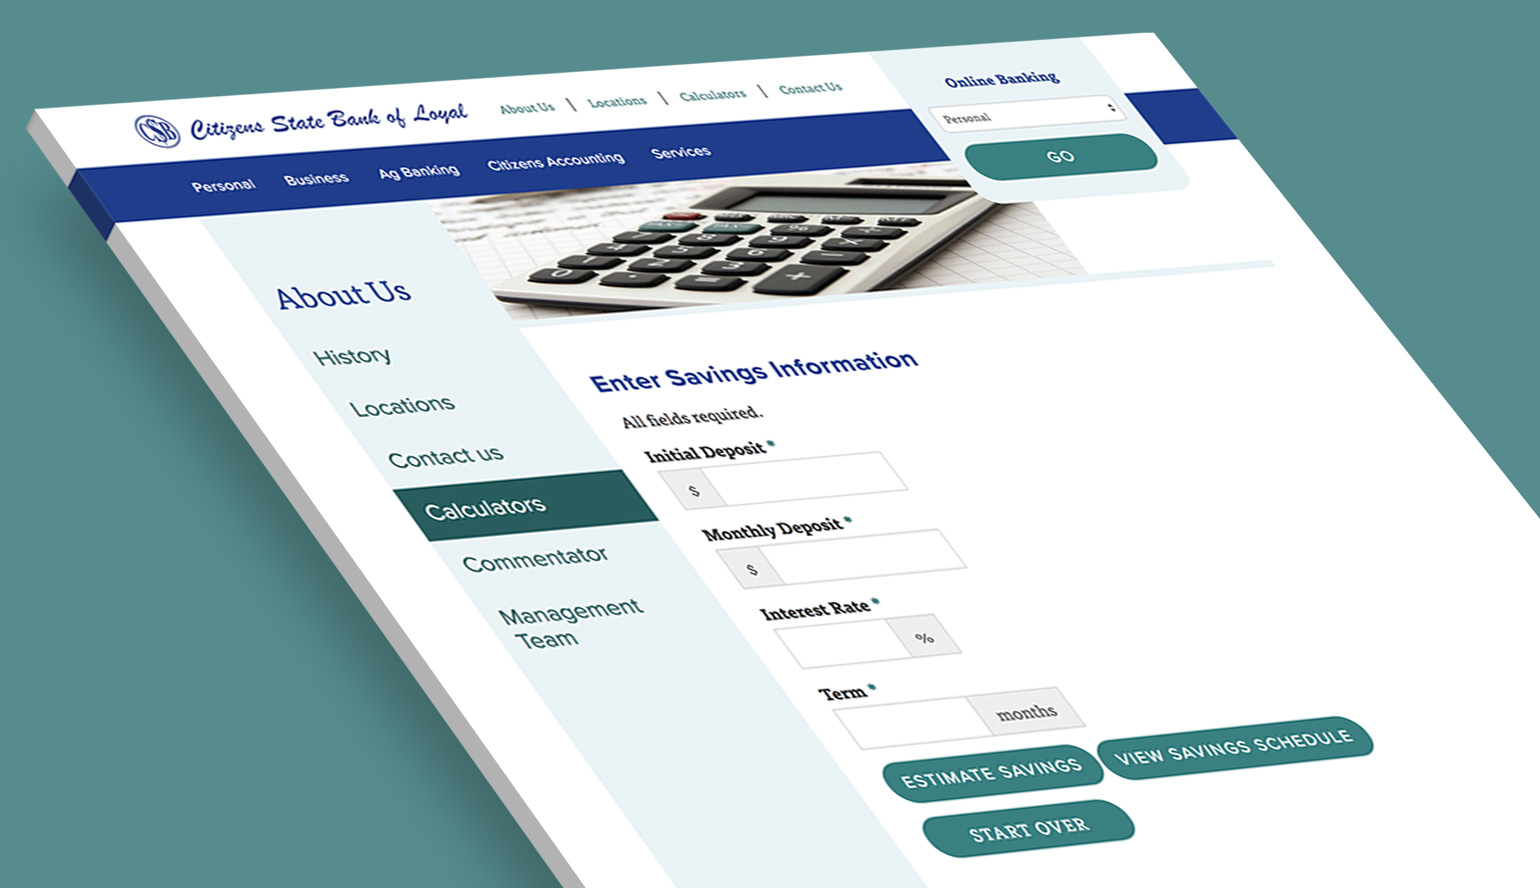 Citizens State Bank of Loyal's financial calculators on the website